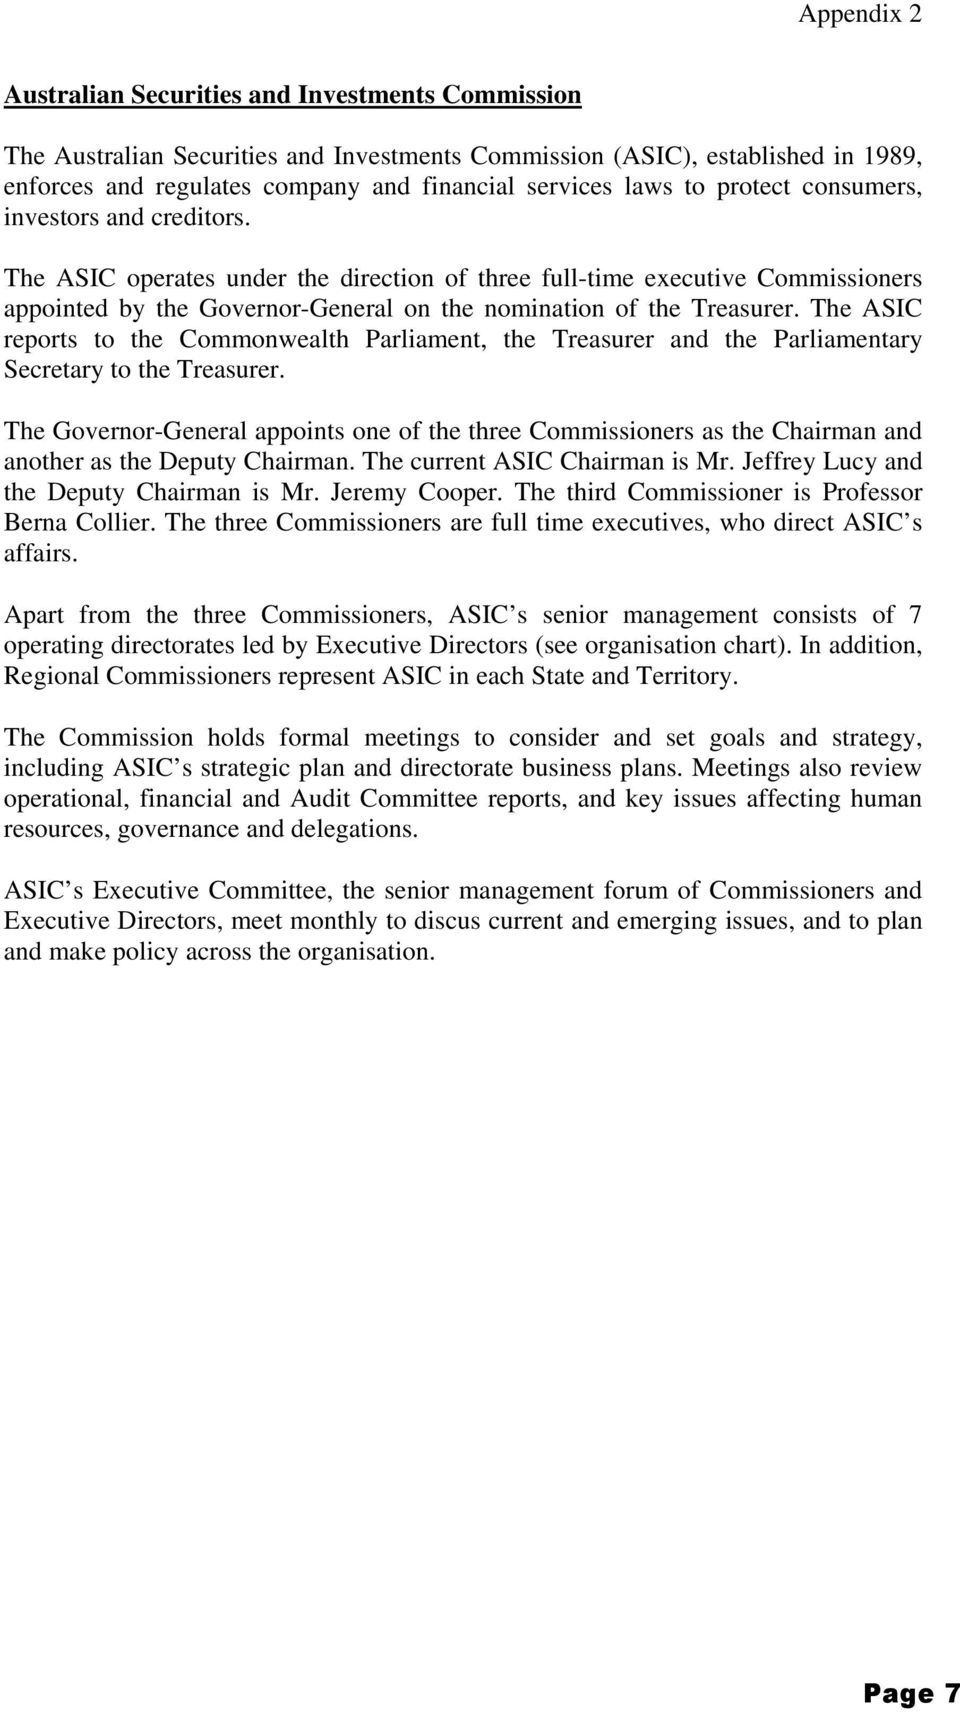 The ASIC reports to the Commonwealth Parliament, the Treasurer and the Parliamentary Secretary to the Treasurer.